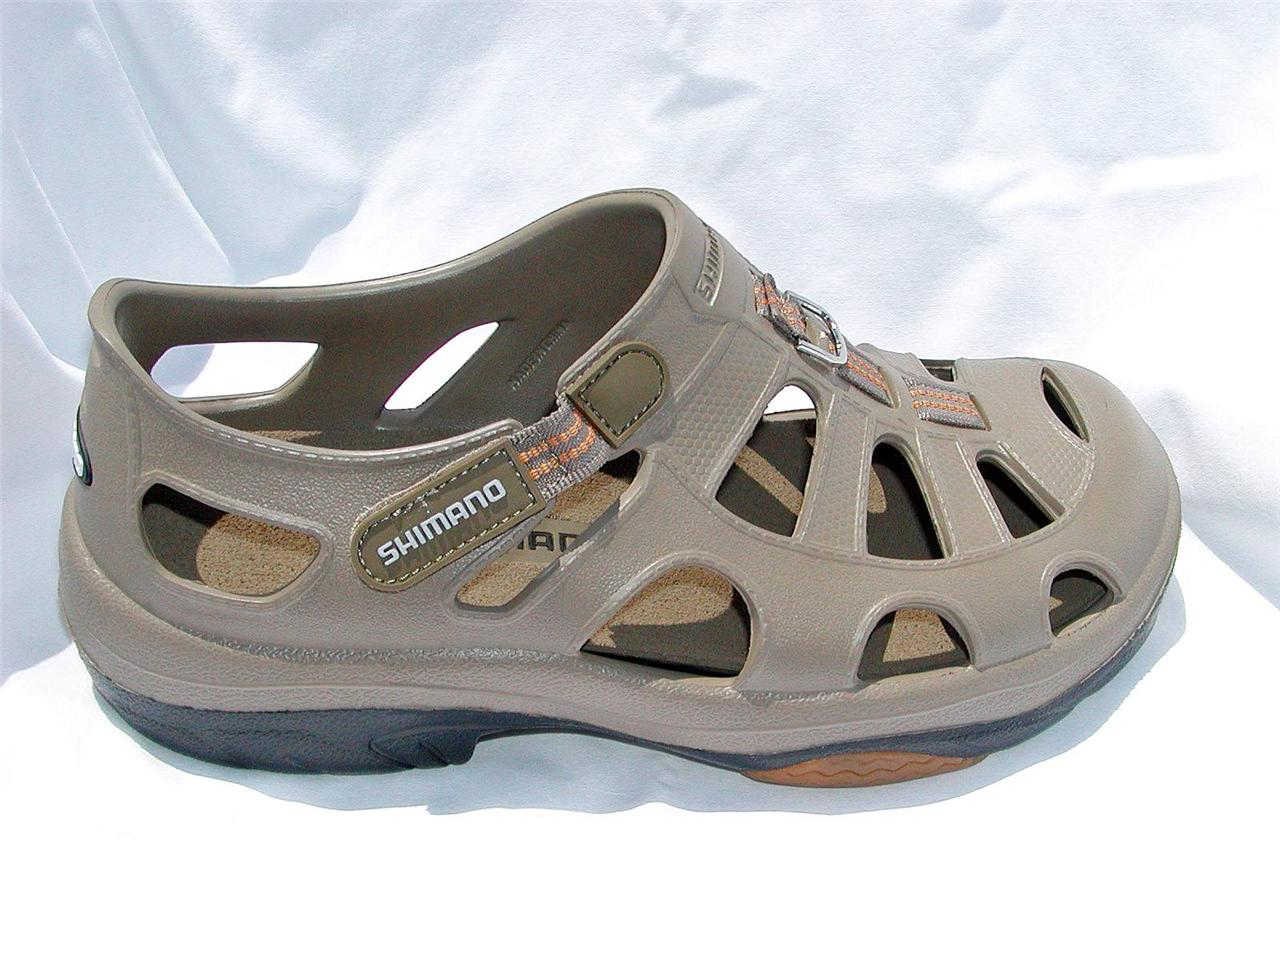 shimano evair marine fishing deck shoe flymasters ebay